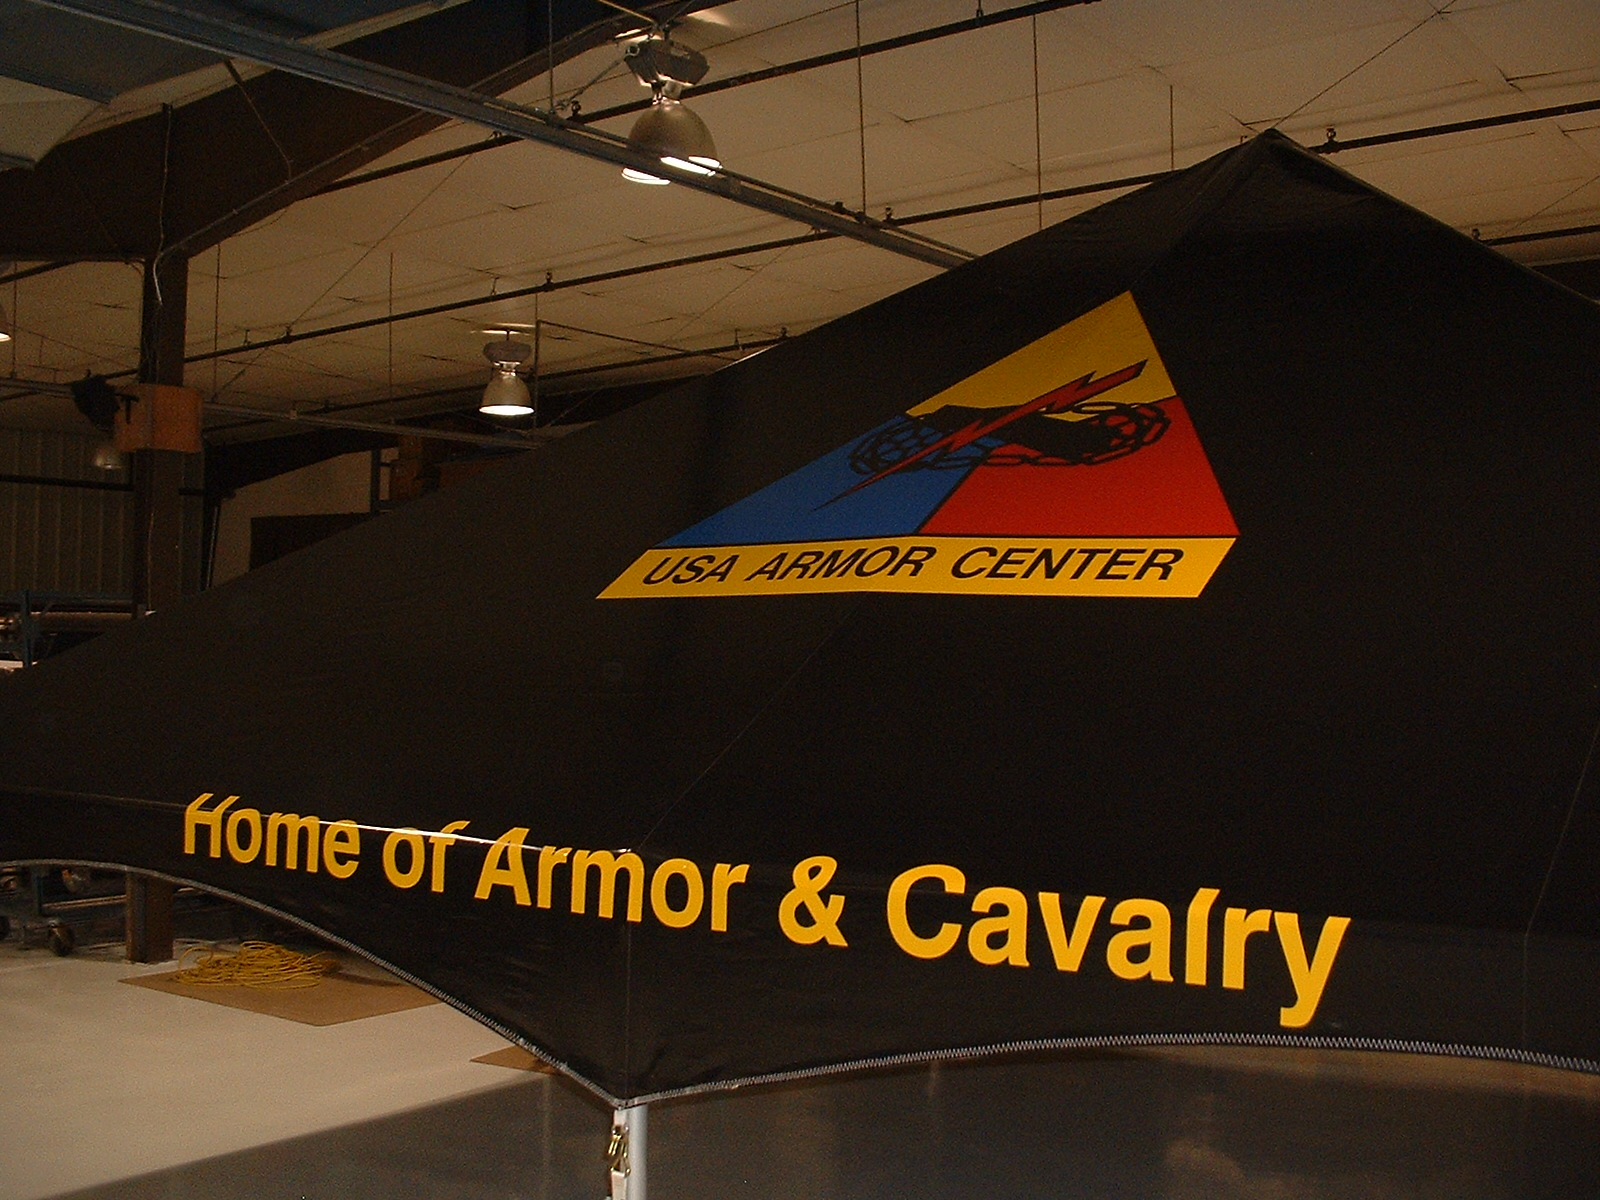 Military Tent, GSA, USA Armor Center, Home of Amor & Cavalry